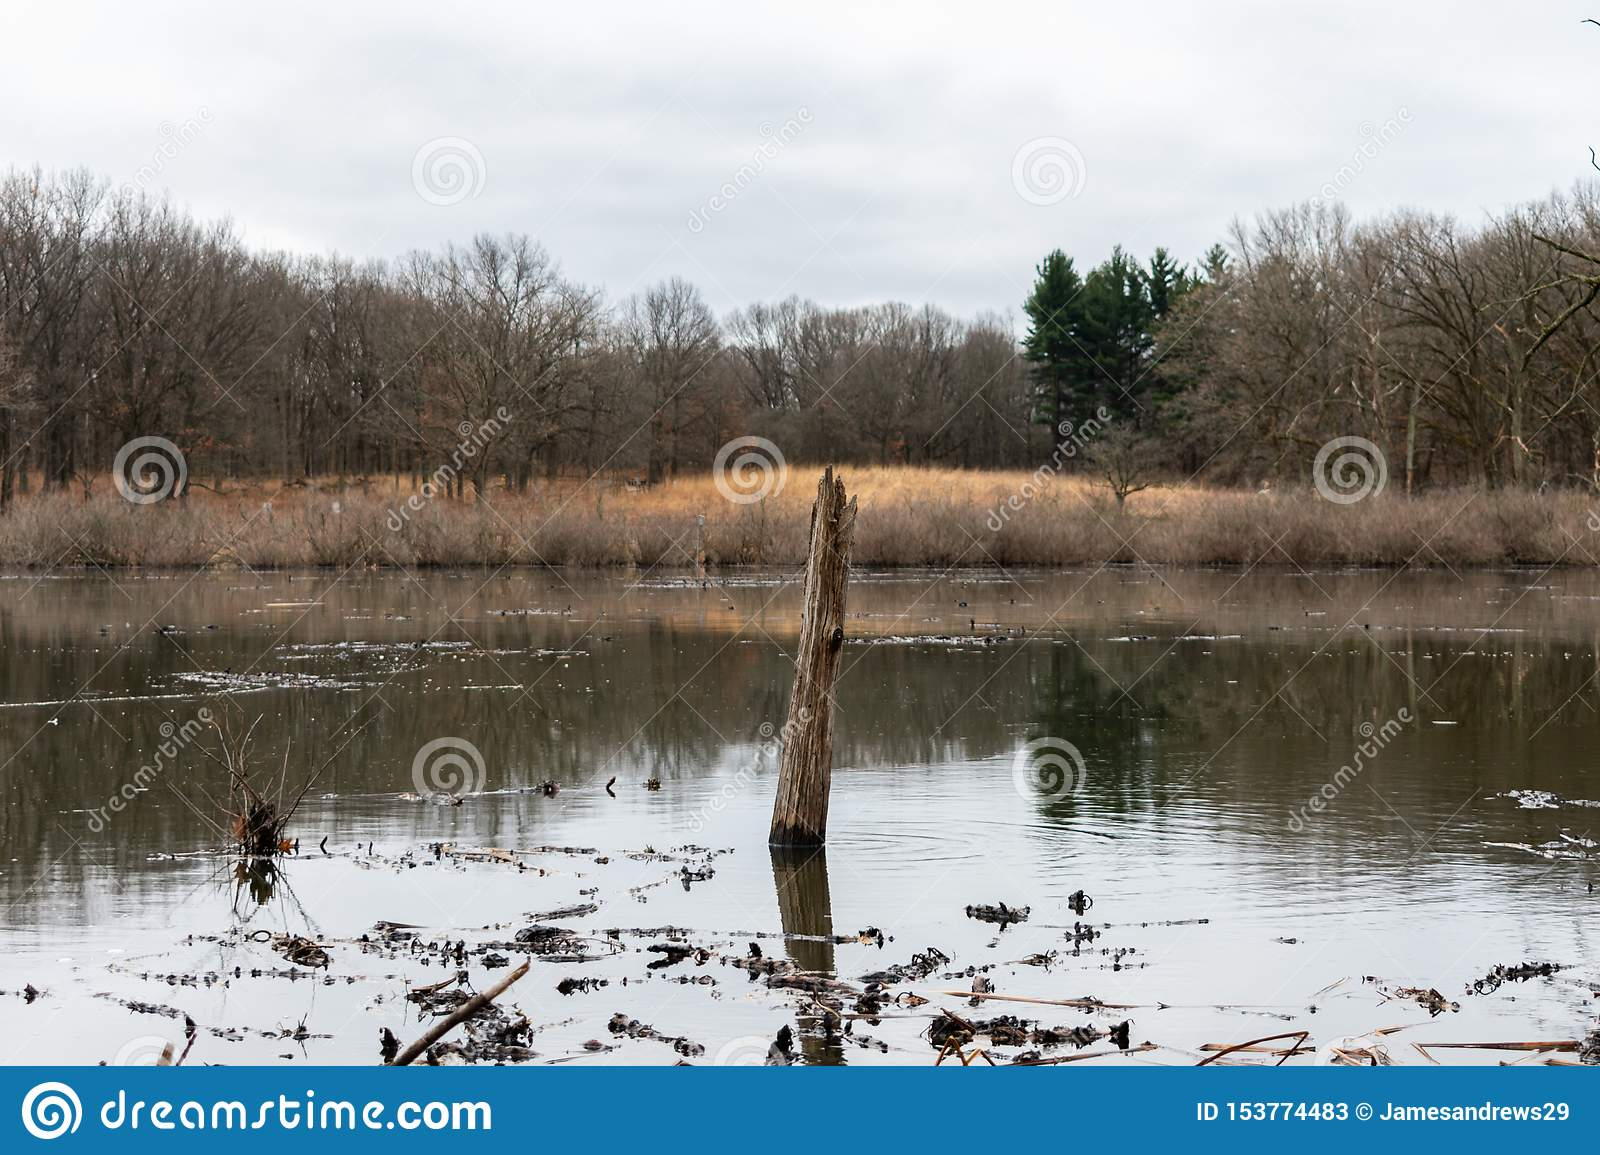 Tree Branch Sticking out of a Pond in a Forest during Winter in Suburban Willow Springs Illinois